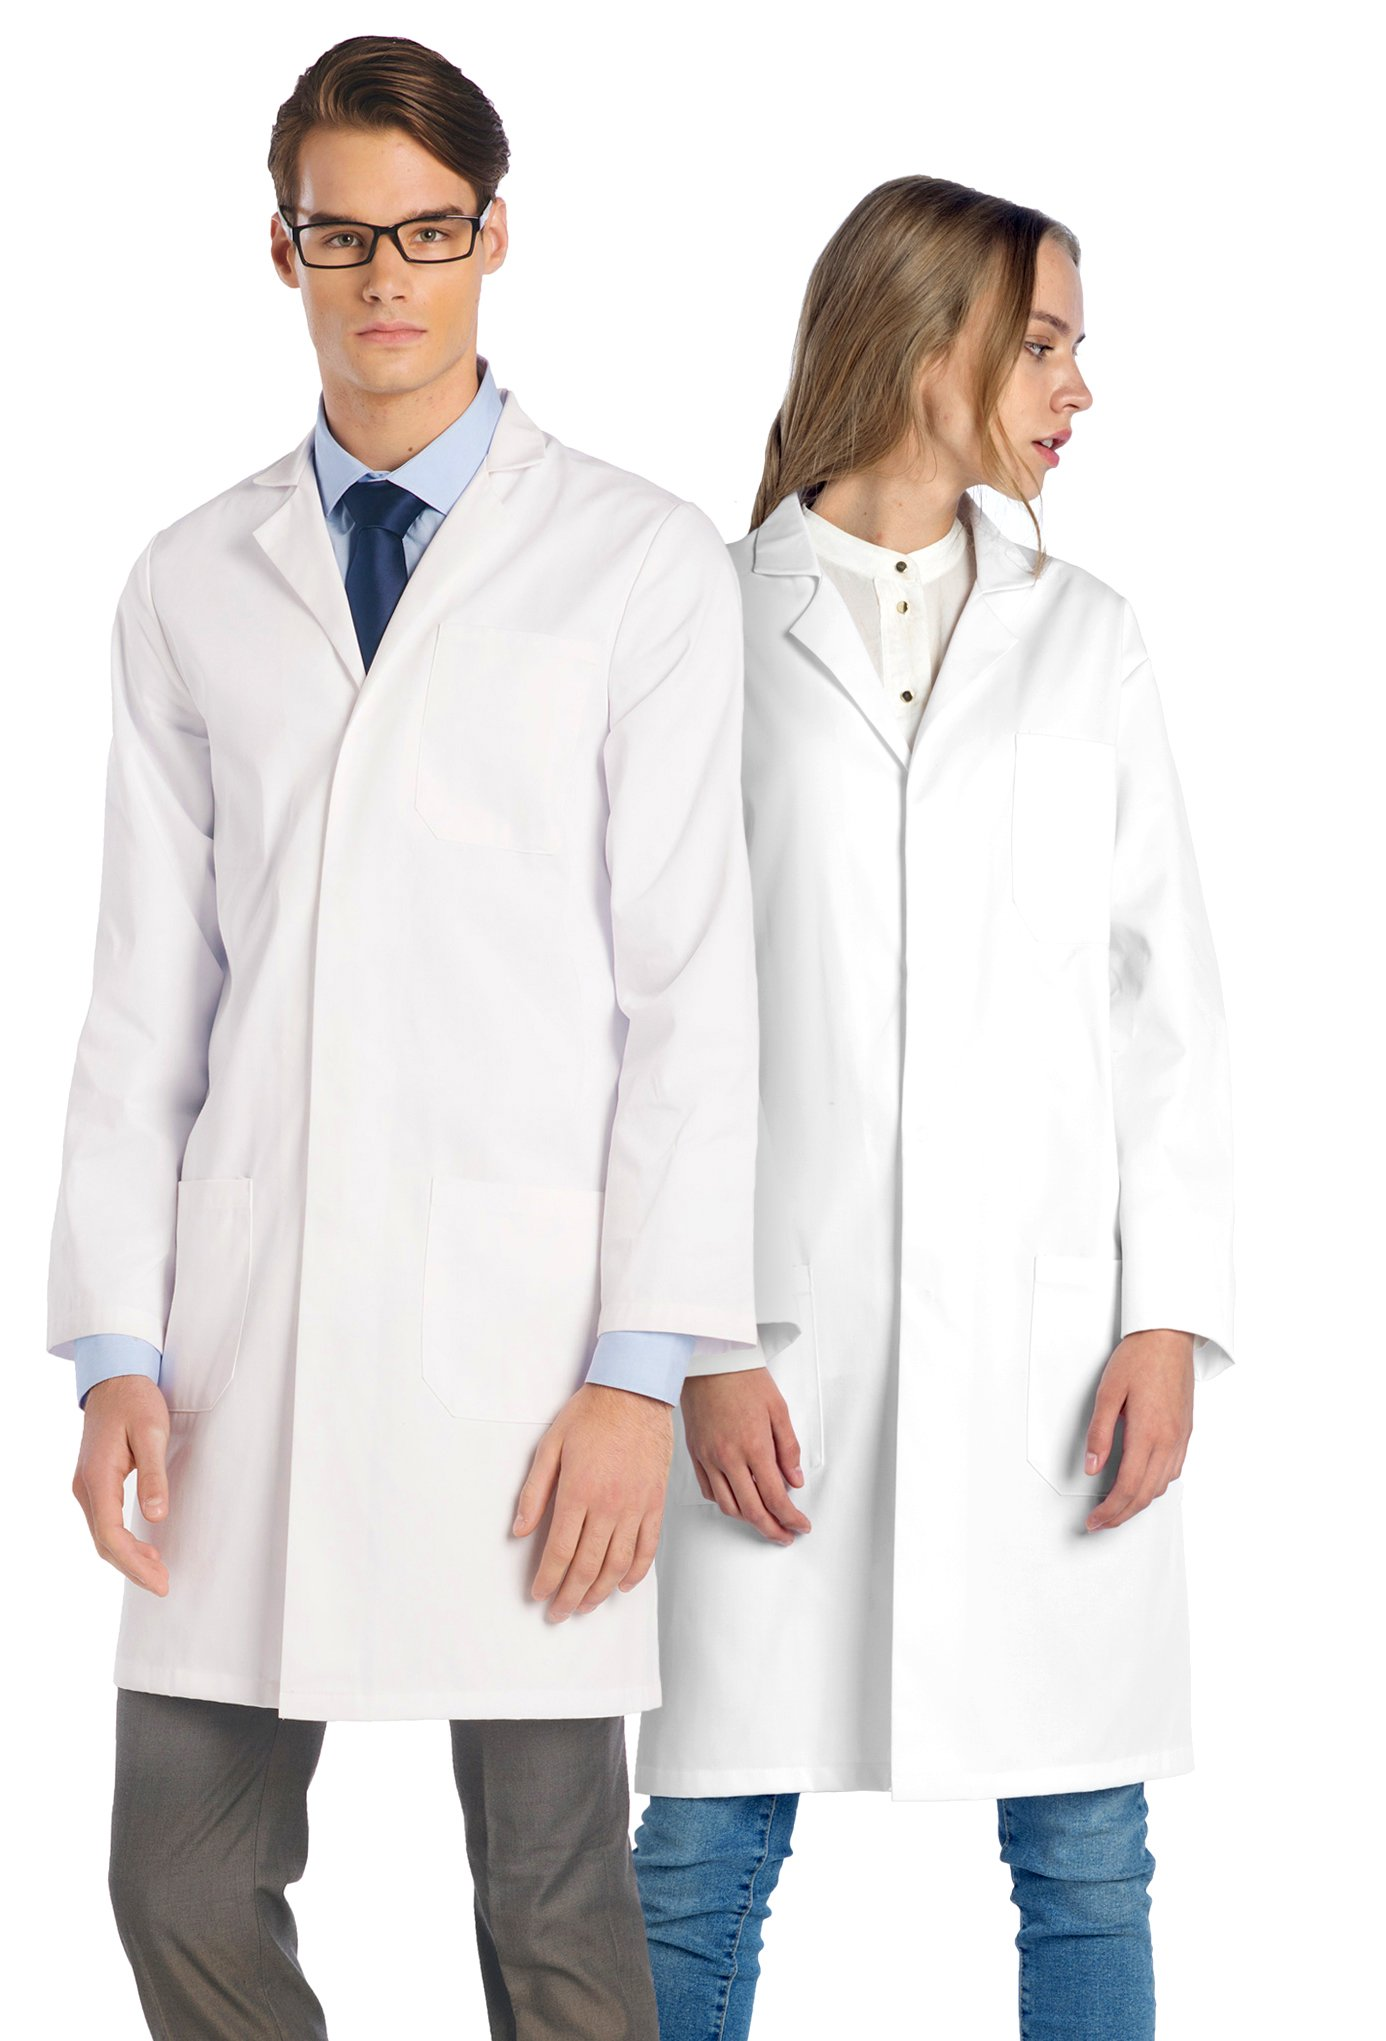 Dr. James Professional Unisex Lab Coat 39 Inch Length US-01-4XL